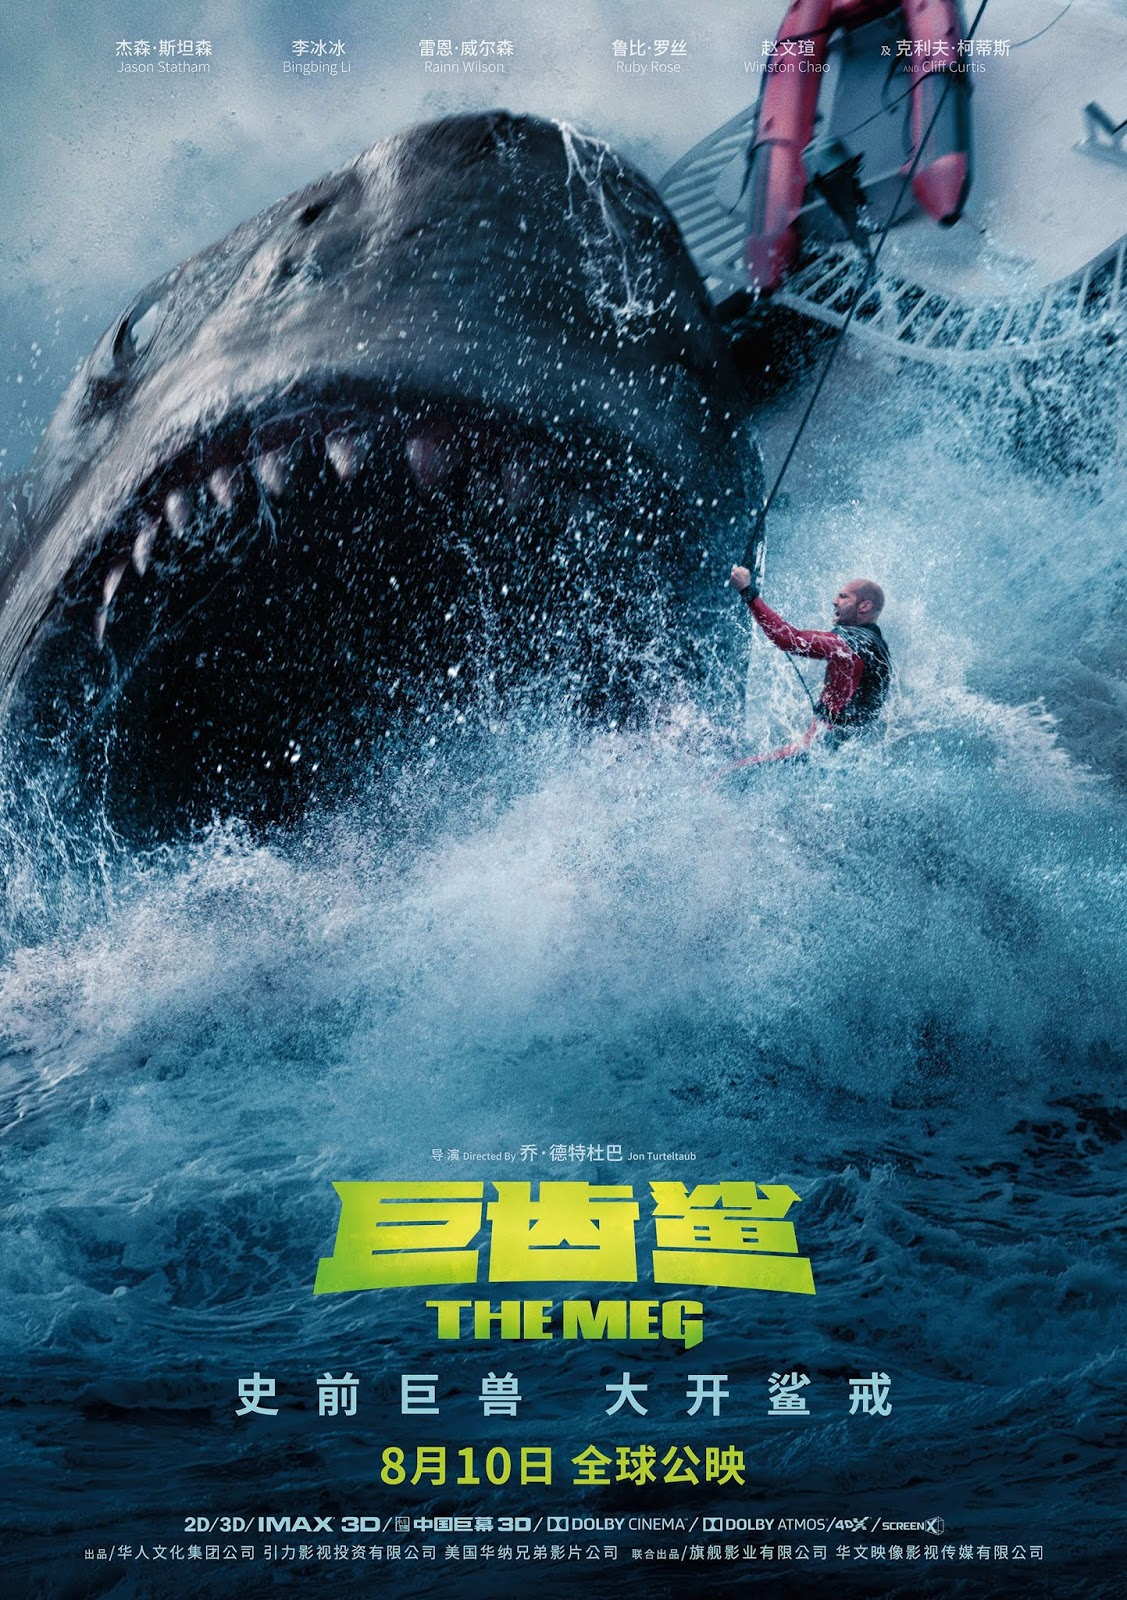 The Meg Lk21 : Download, (2018), Movie, Situs, Paling